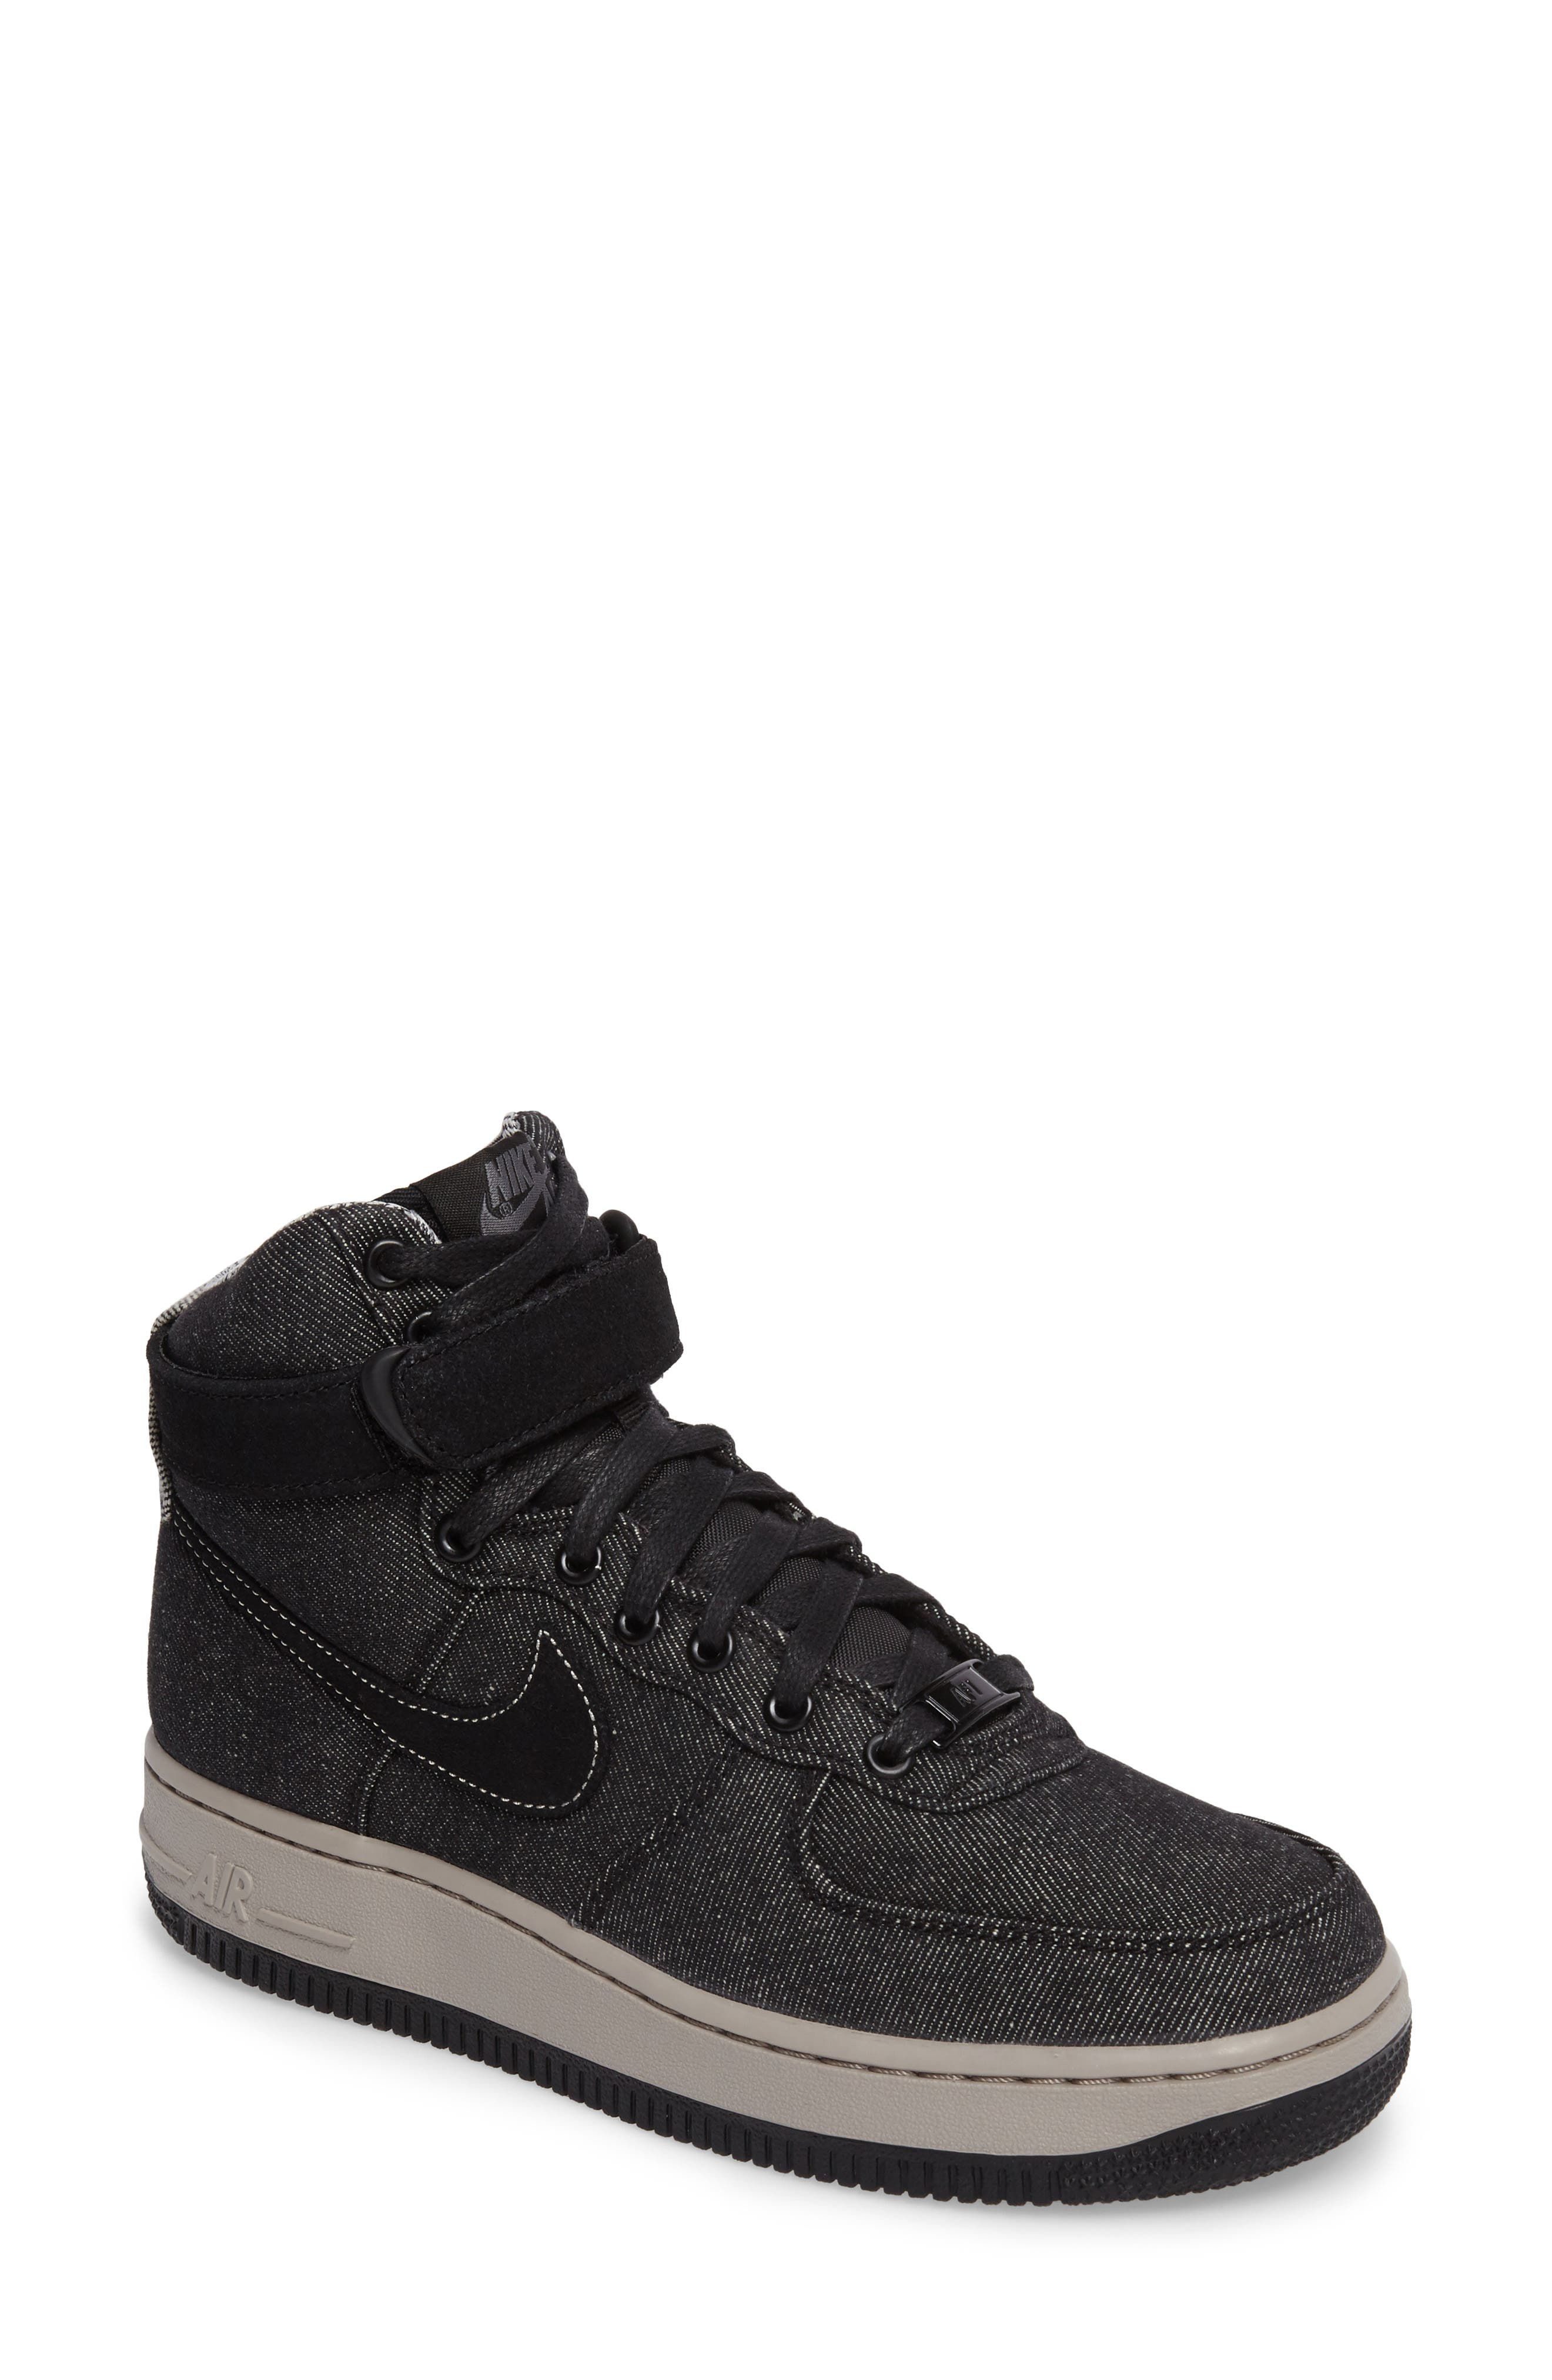 Air Force 1 High Top SE Sneaker,                         Main,                         color, 003